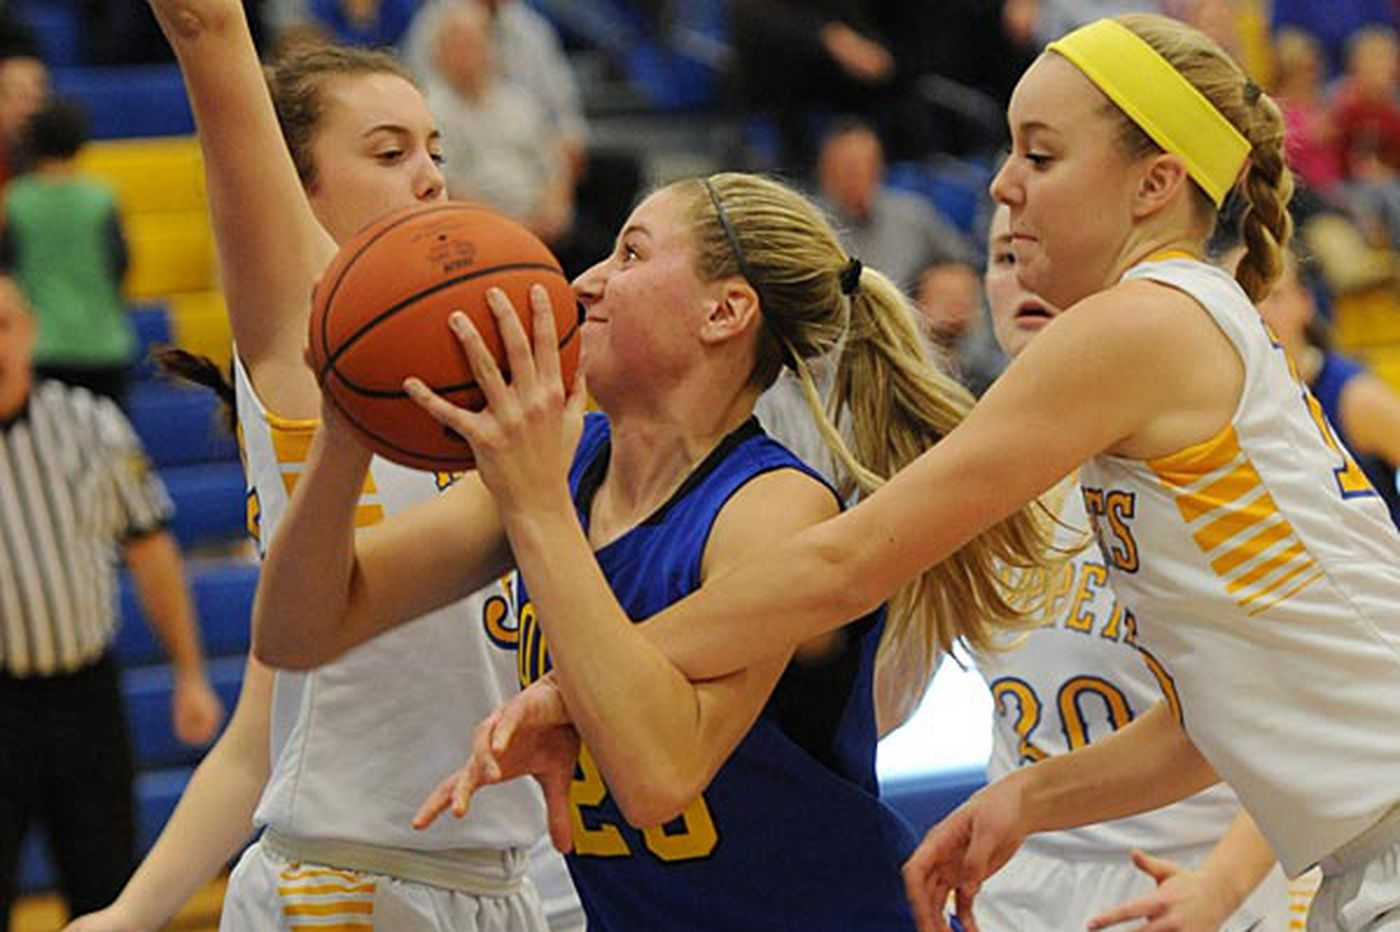 Warfel carries Downingtown East past Downingtown West